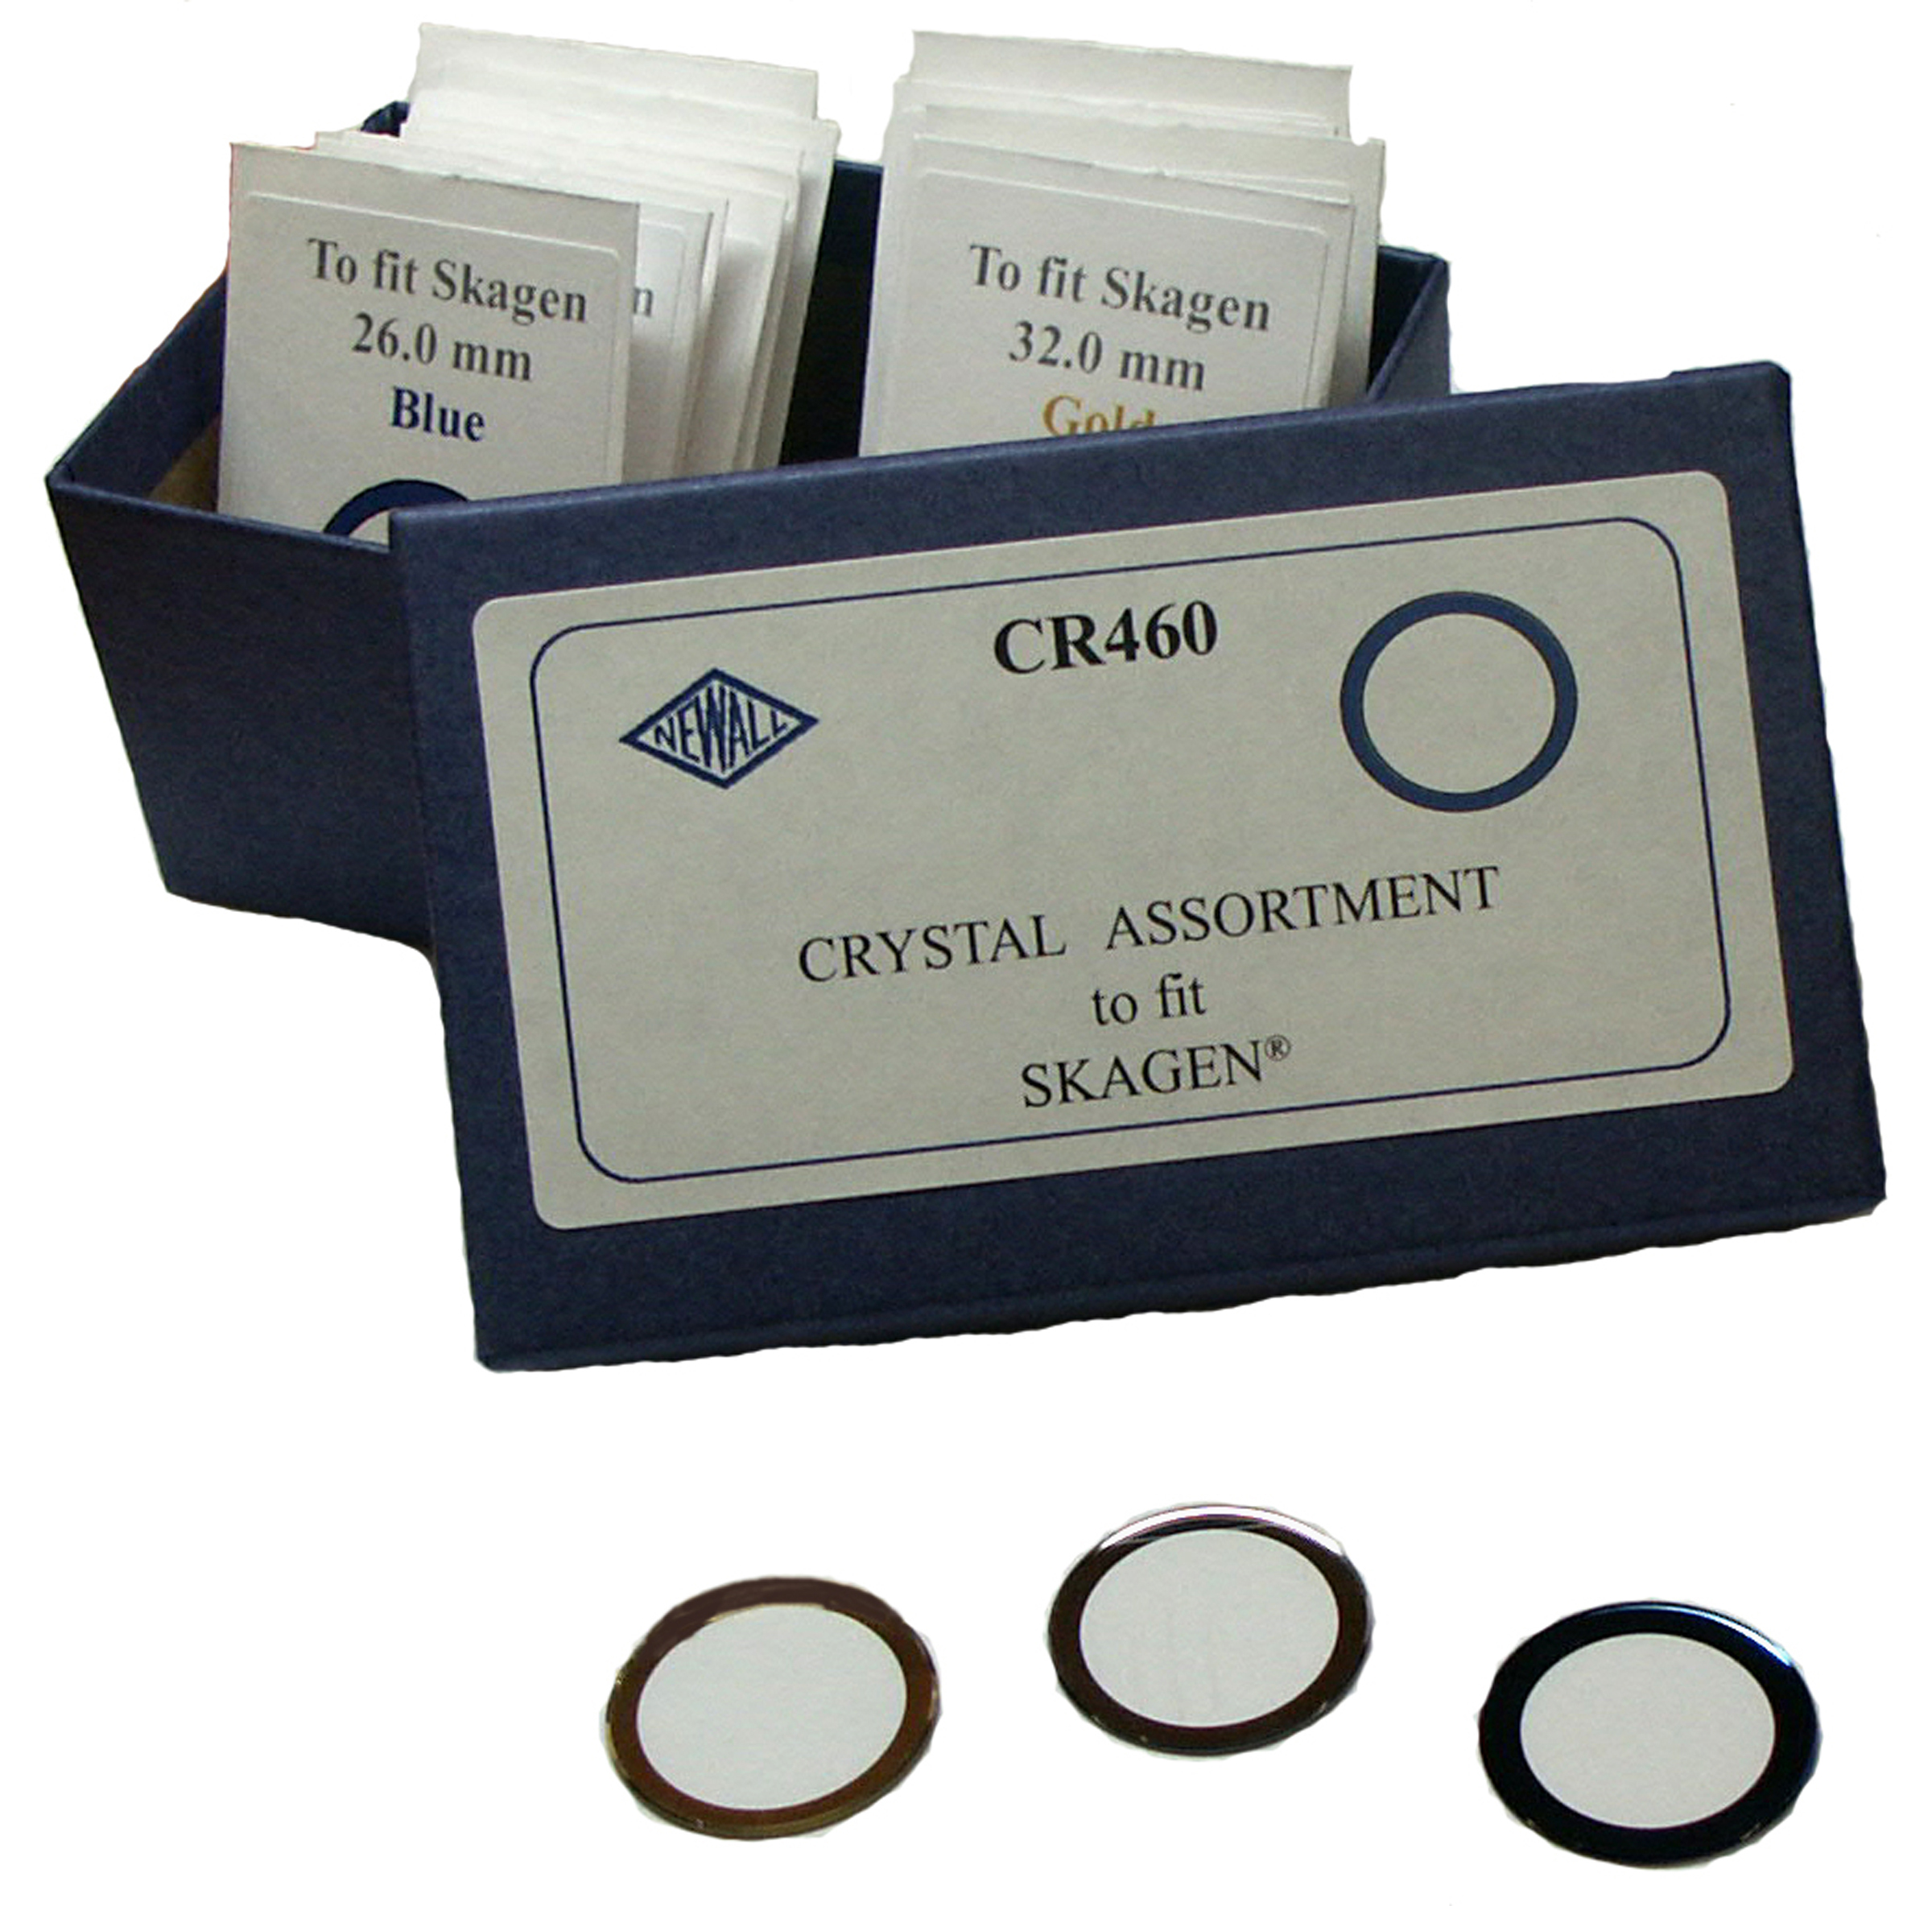 CR460 Crystal Assortment to fit Skagen Watches -- 16 pieces Generic